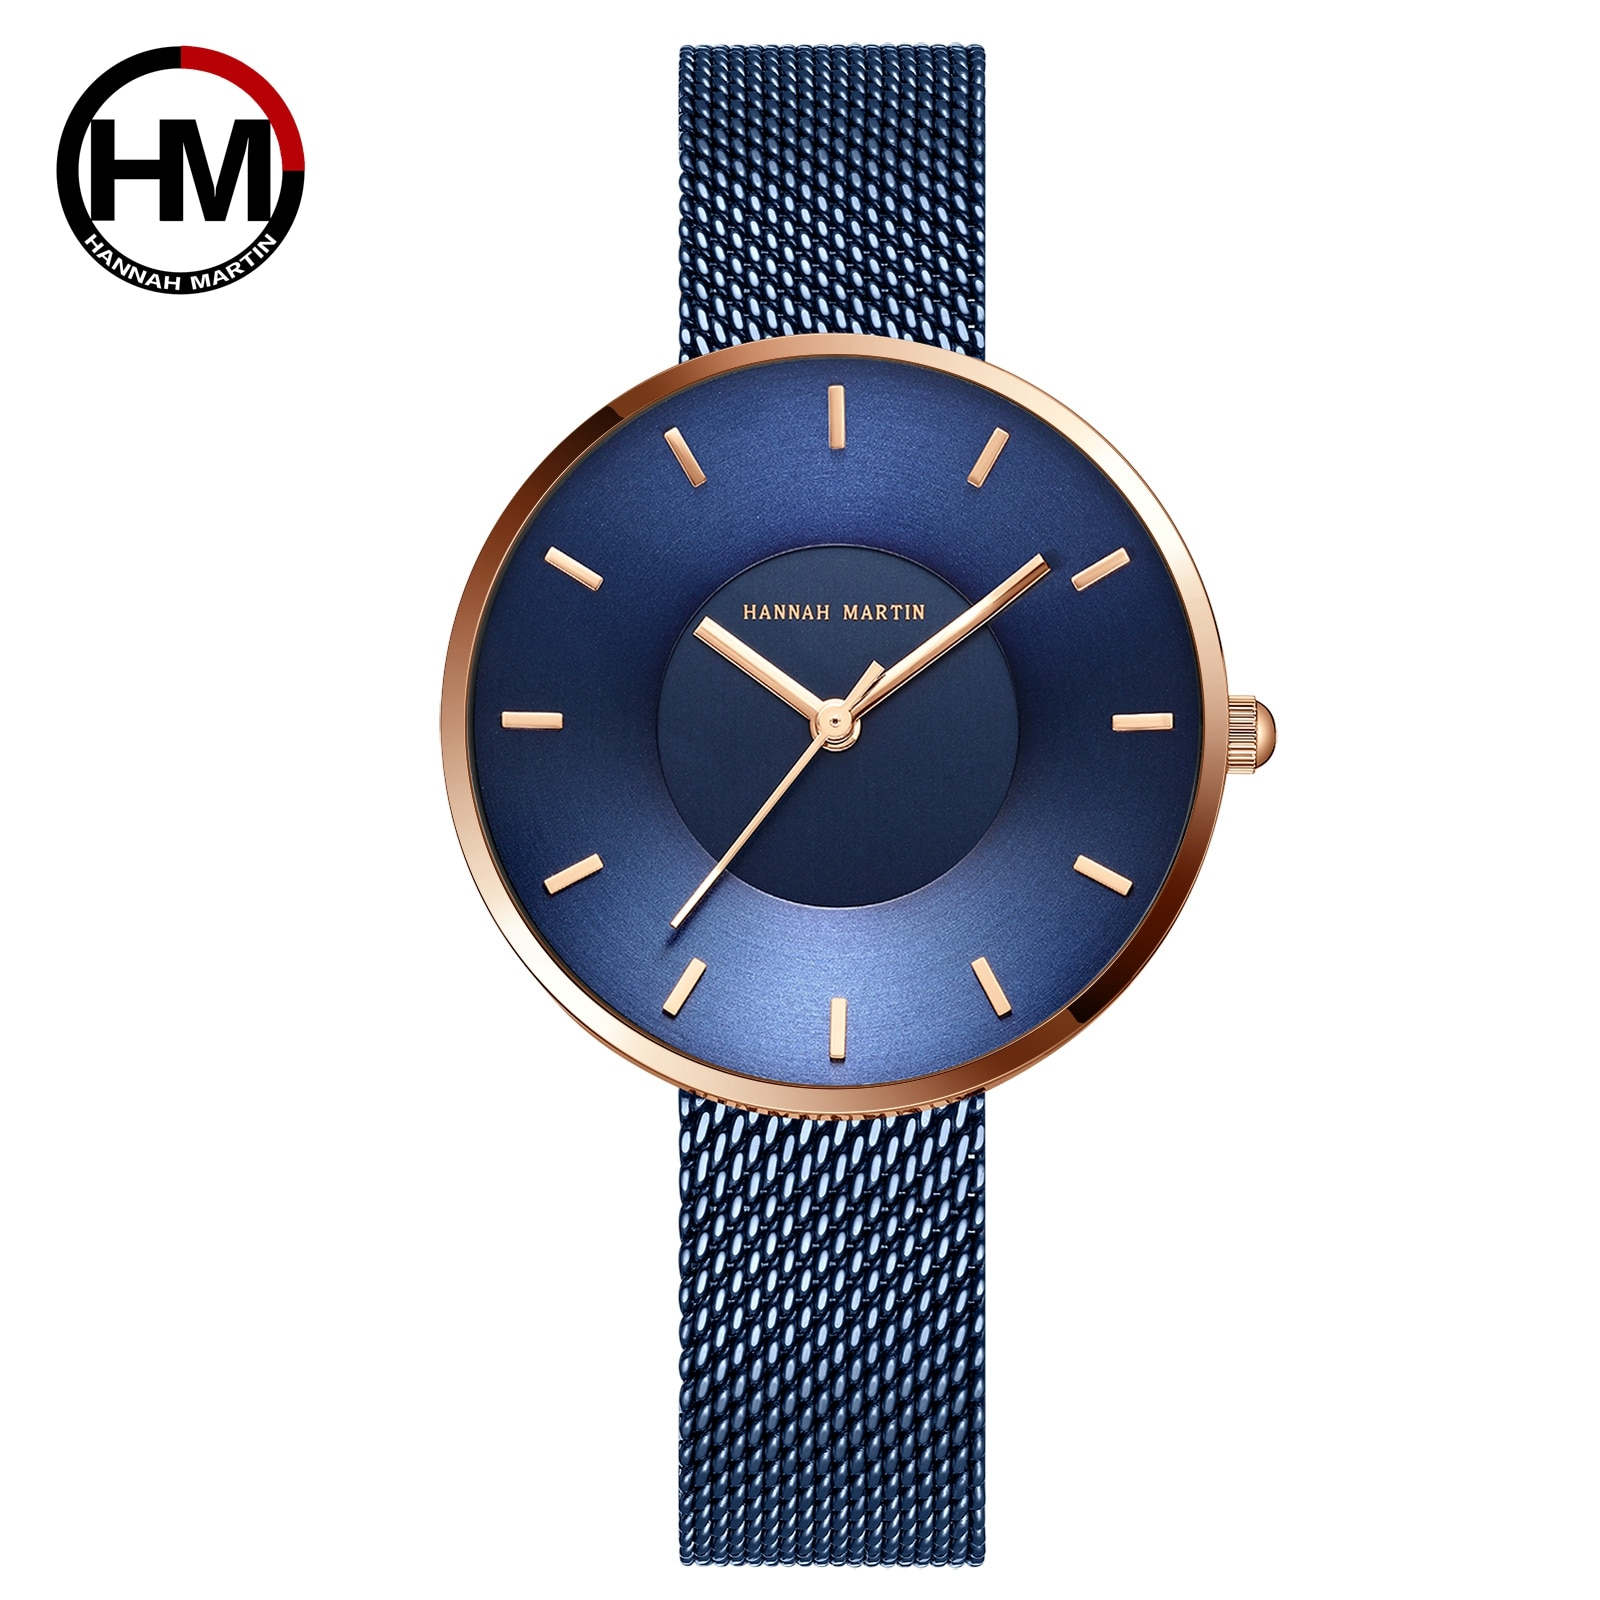 JAPAN MIYOTA 2035 Quartz Movement Simple Design Luxury Gift Stainless Steel Band Curved Face Blue Rose Gold Watches For Women enlarge